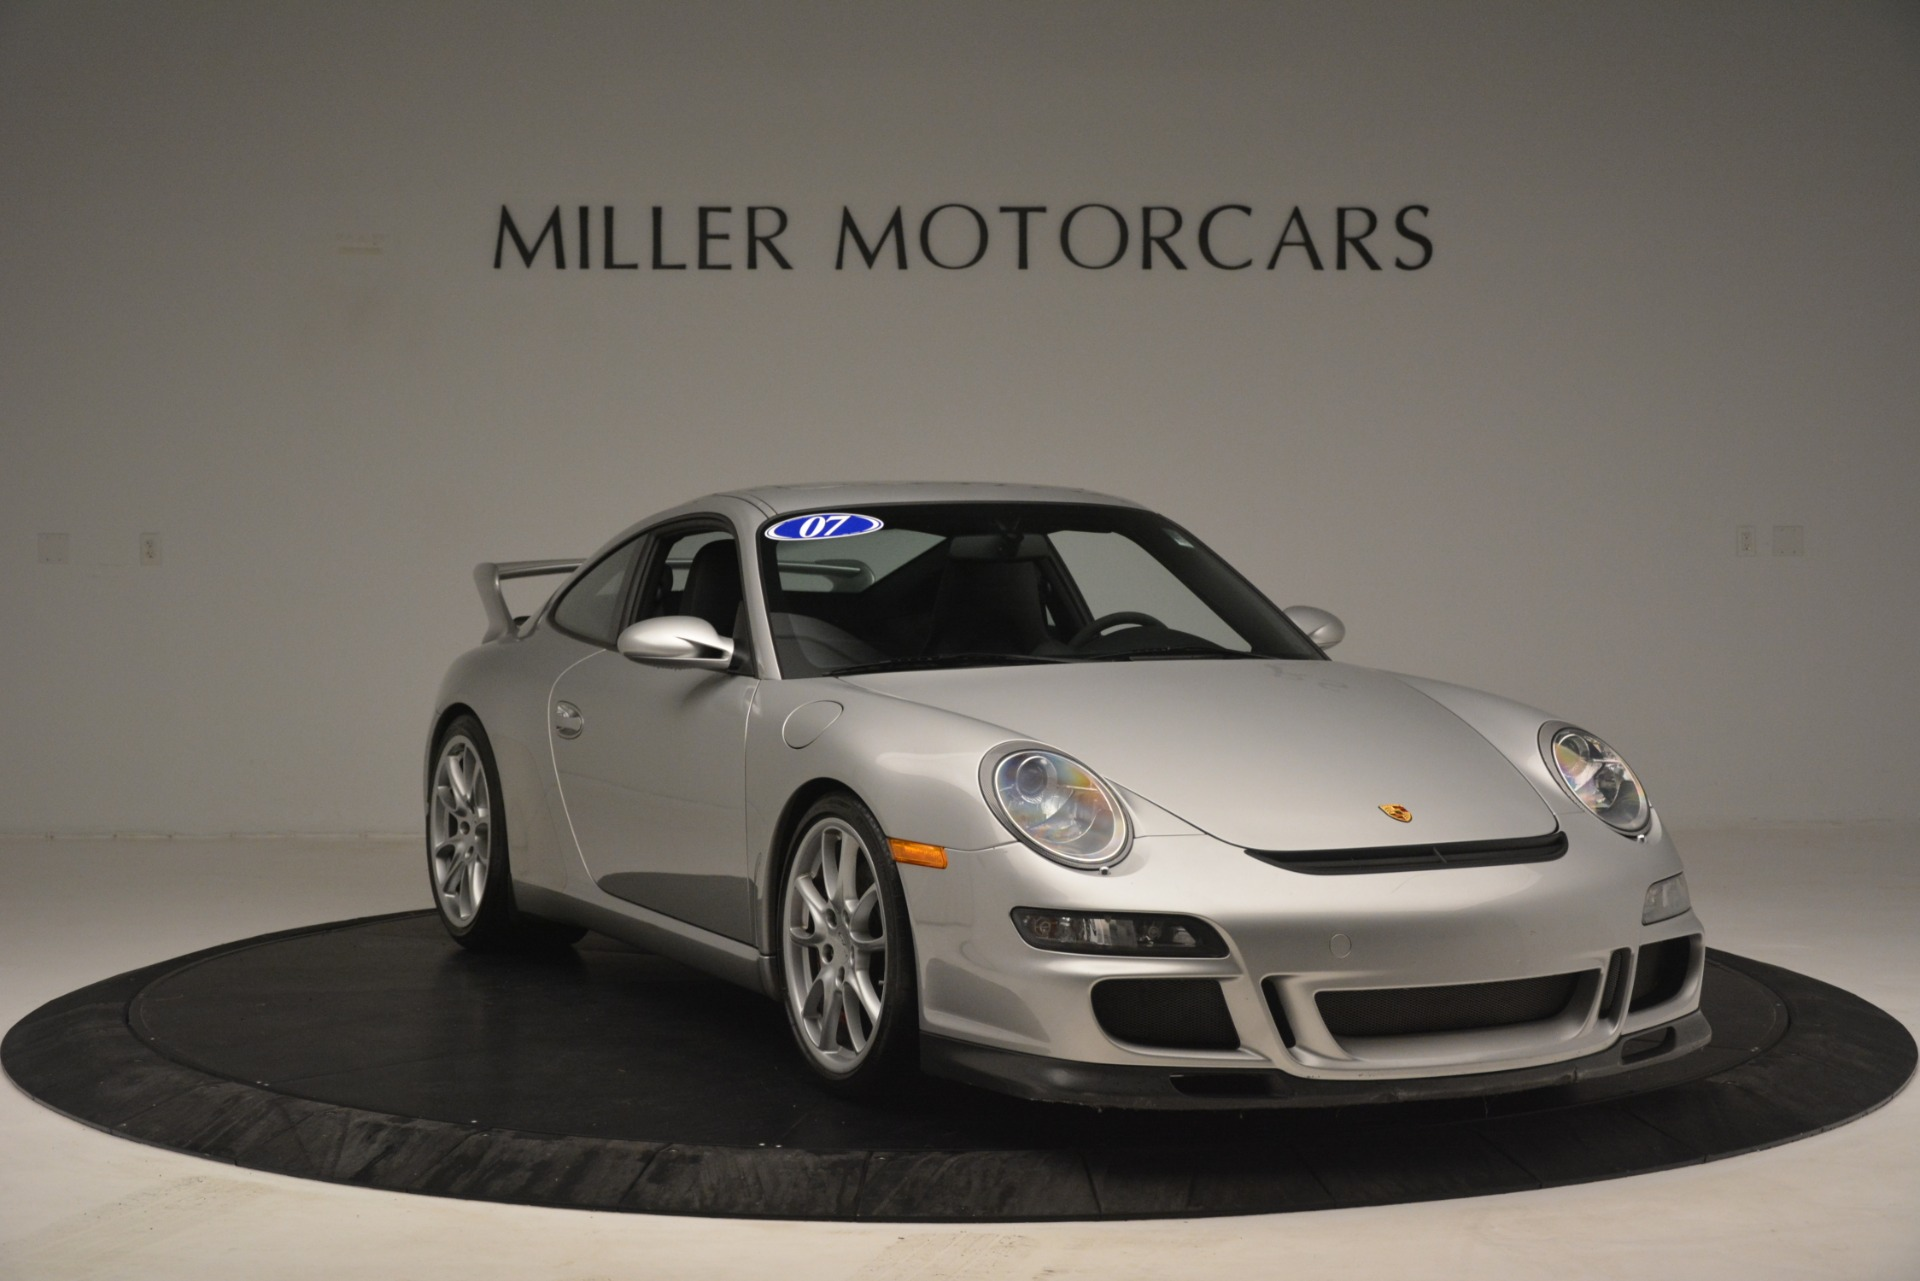 Used 2007 Porsche 911 GT3 For Sale In Greenwich, CT 3120_p11